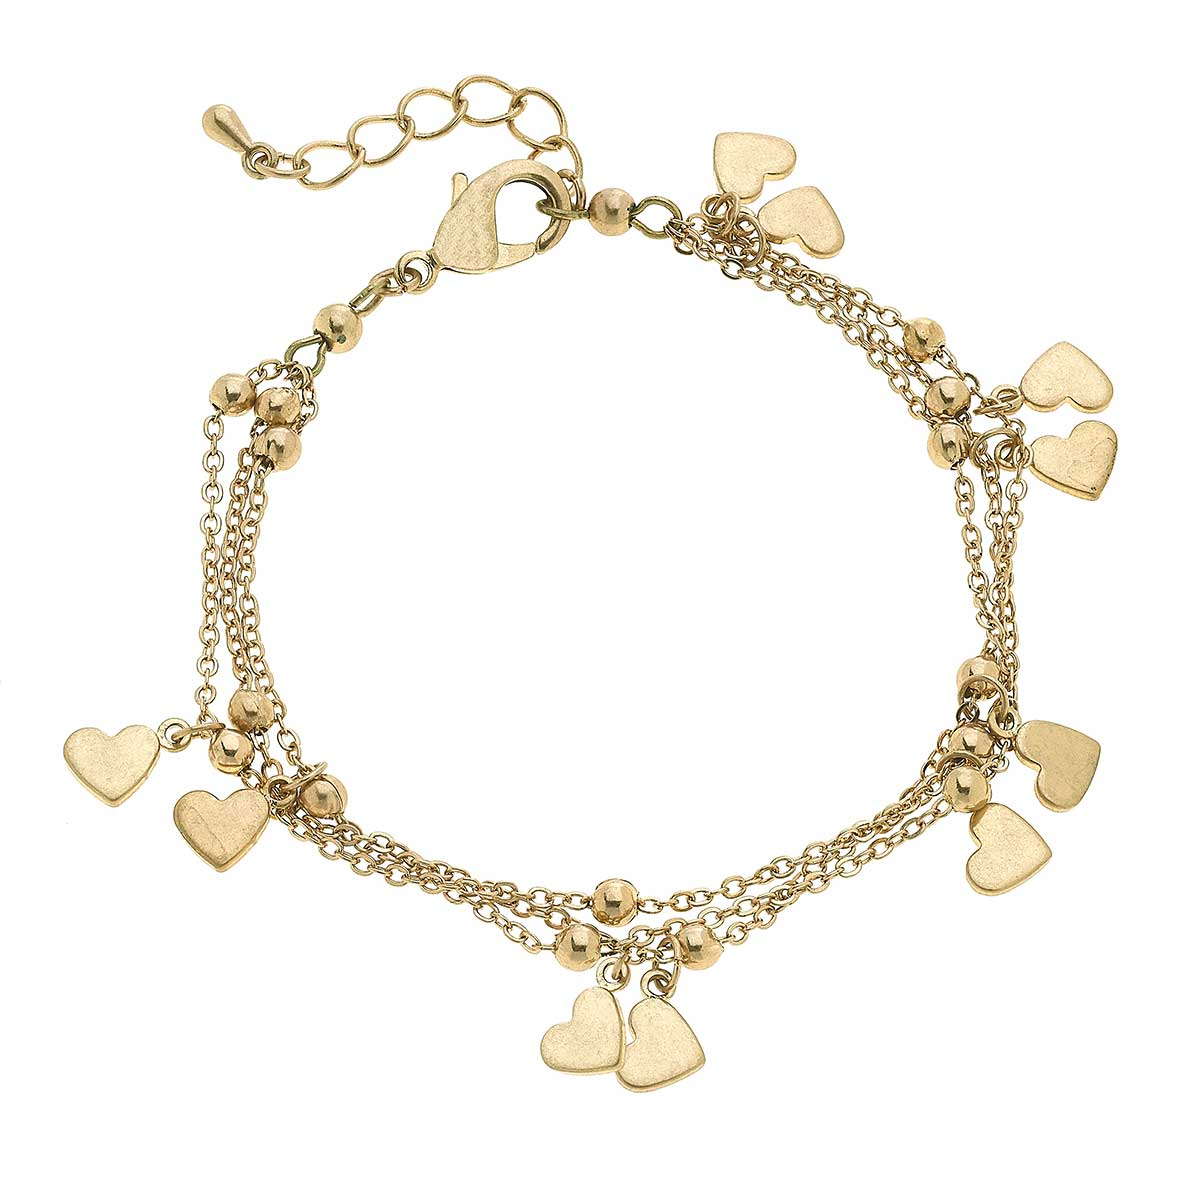 Lexi Delicate Layered Chain Heart Bracelet in Worn Gold